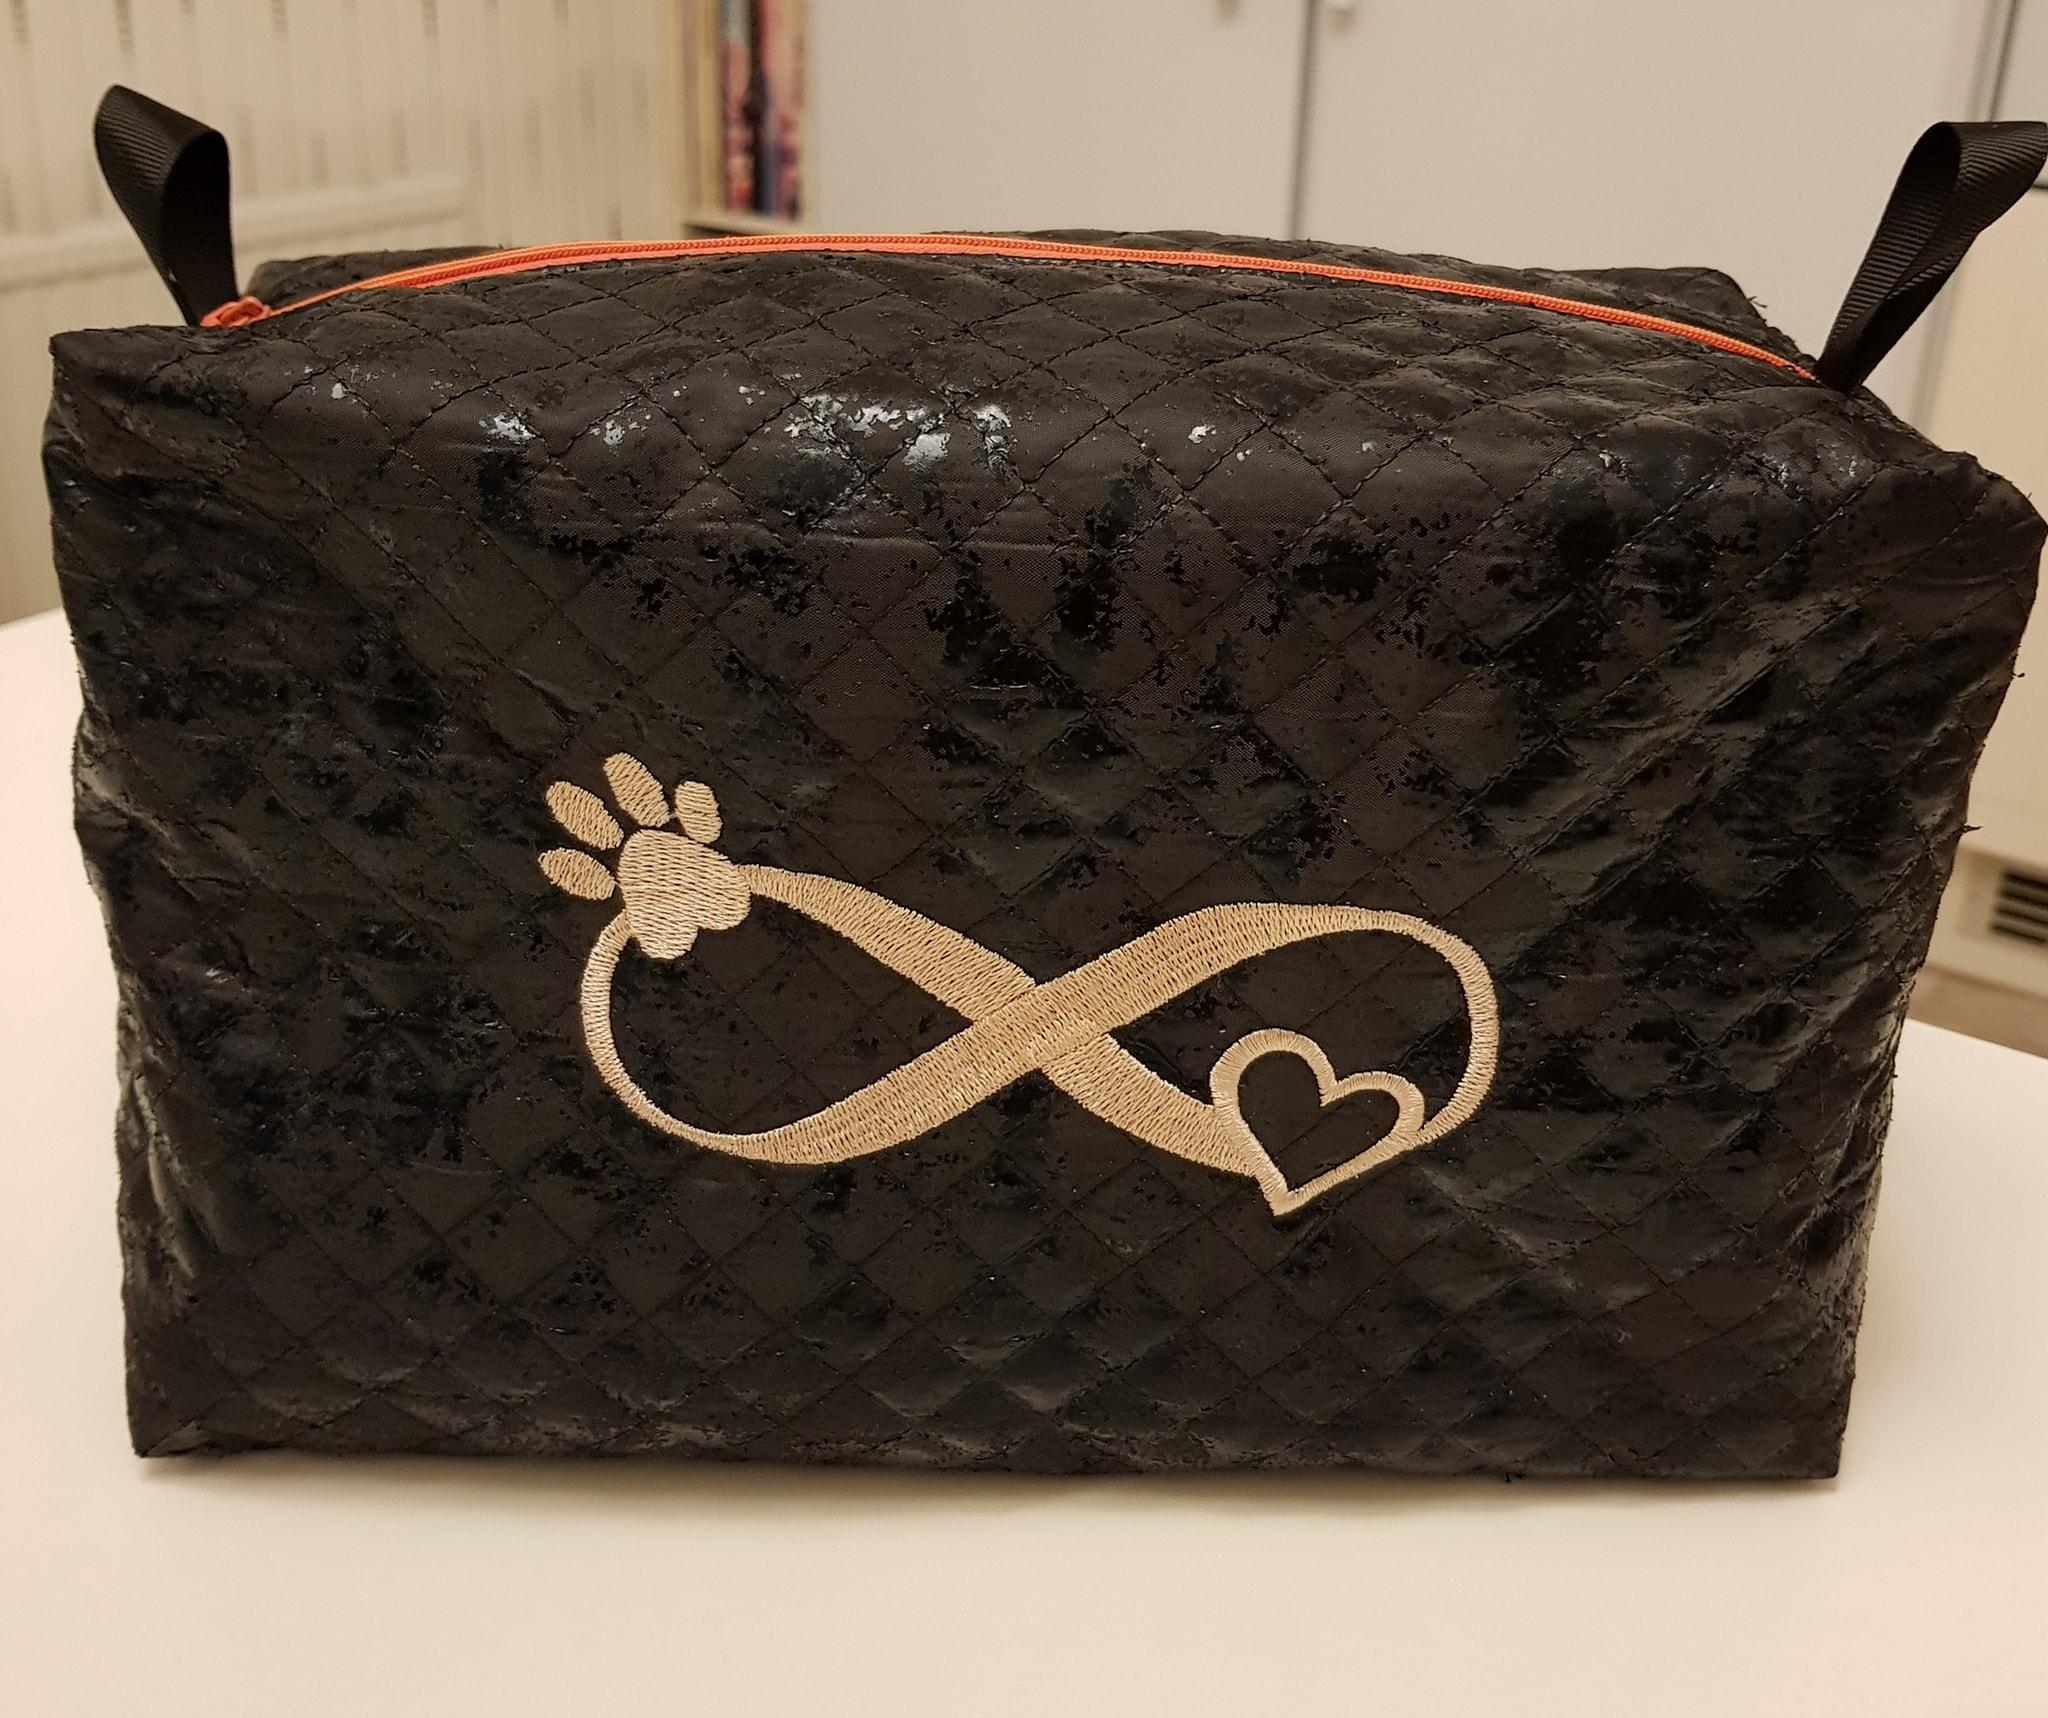 Embroidered bag with Paw free design